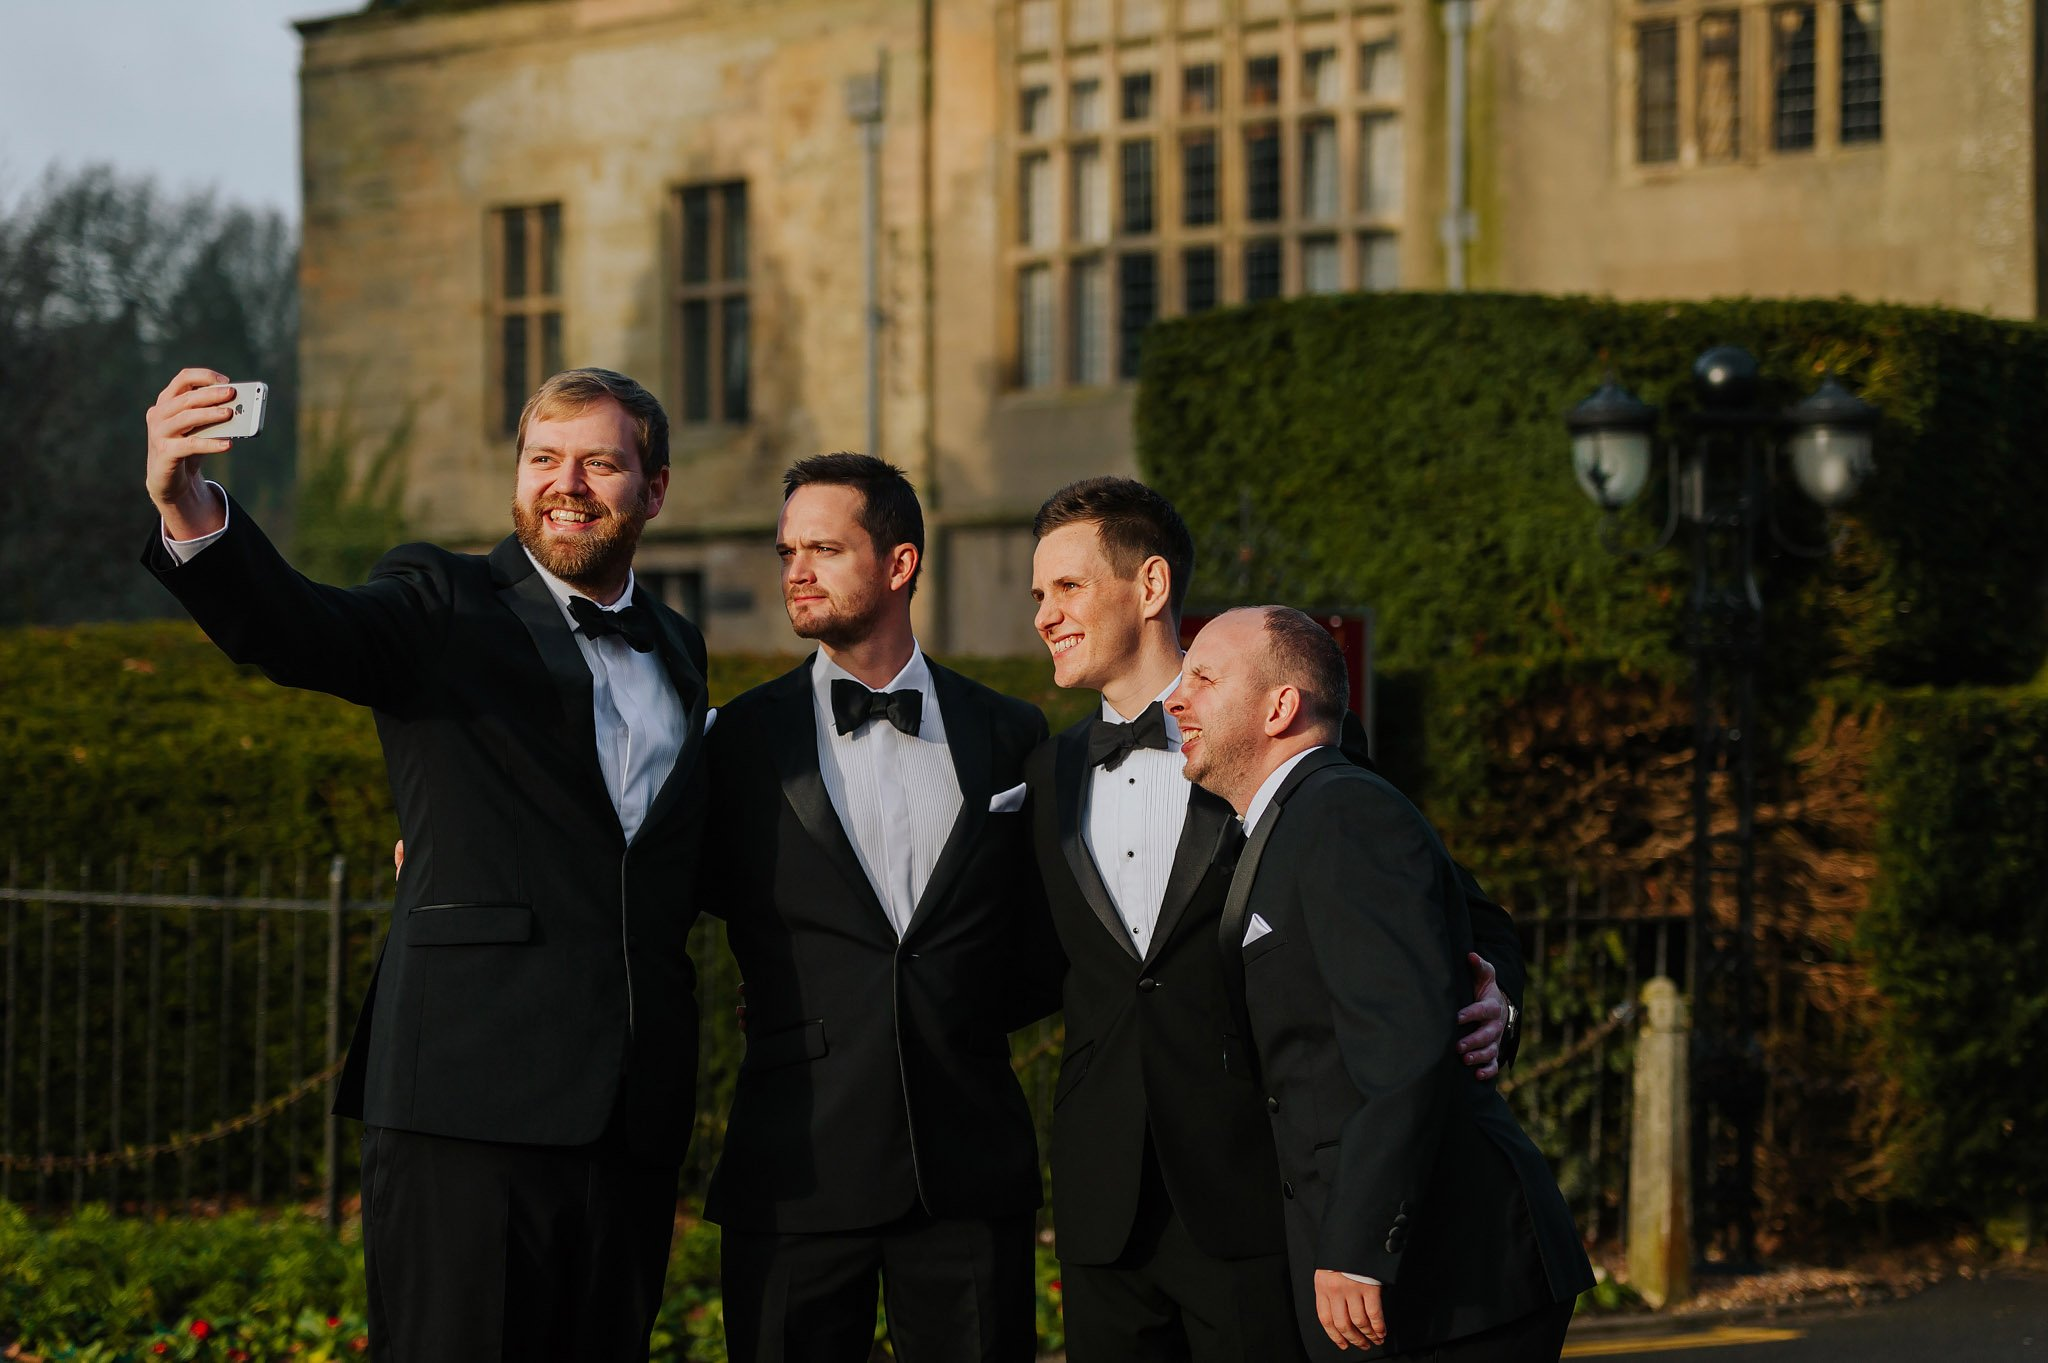 Coombe Abbey wedding in Coventry, Warwickshire - Sam + Matt 55